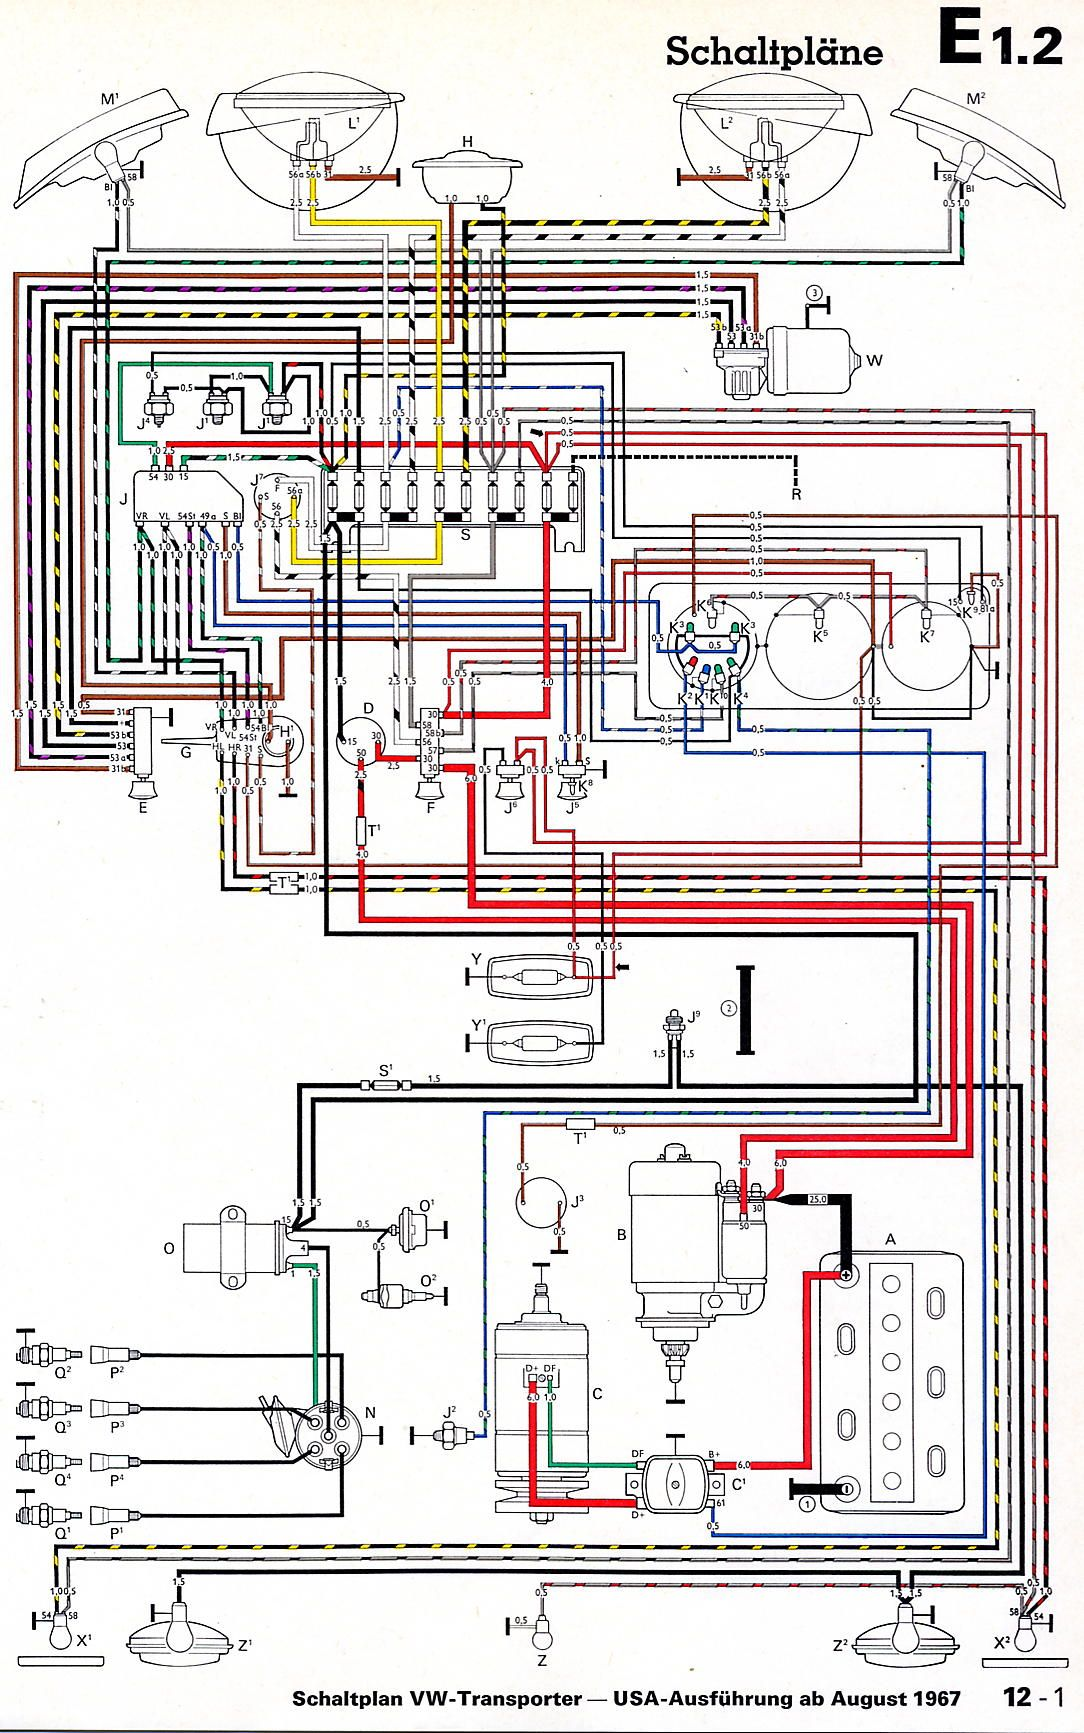 1968 vw bus wiring diagram